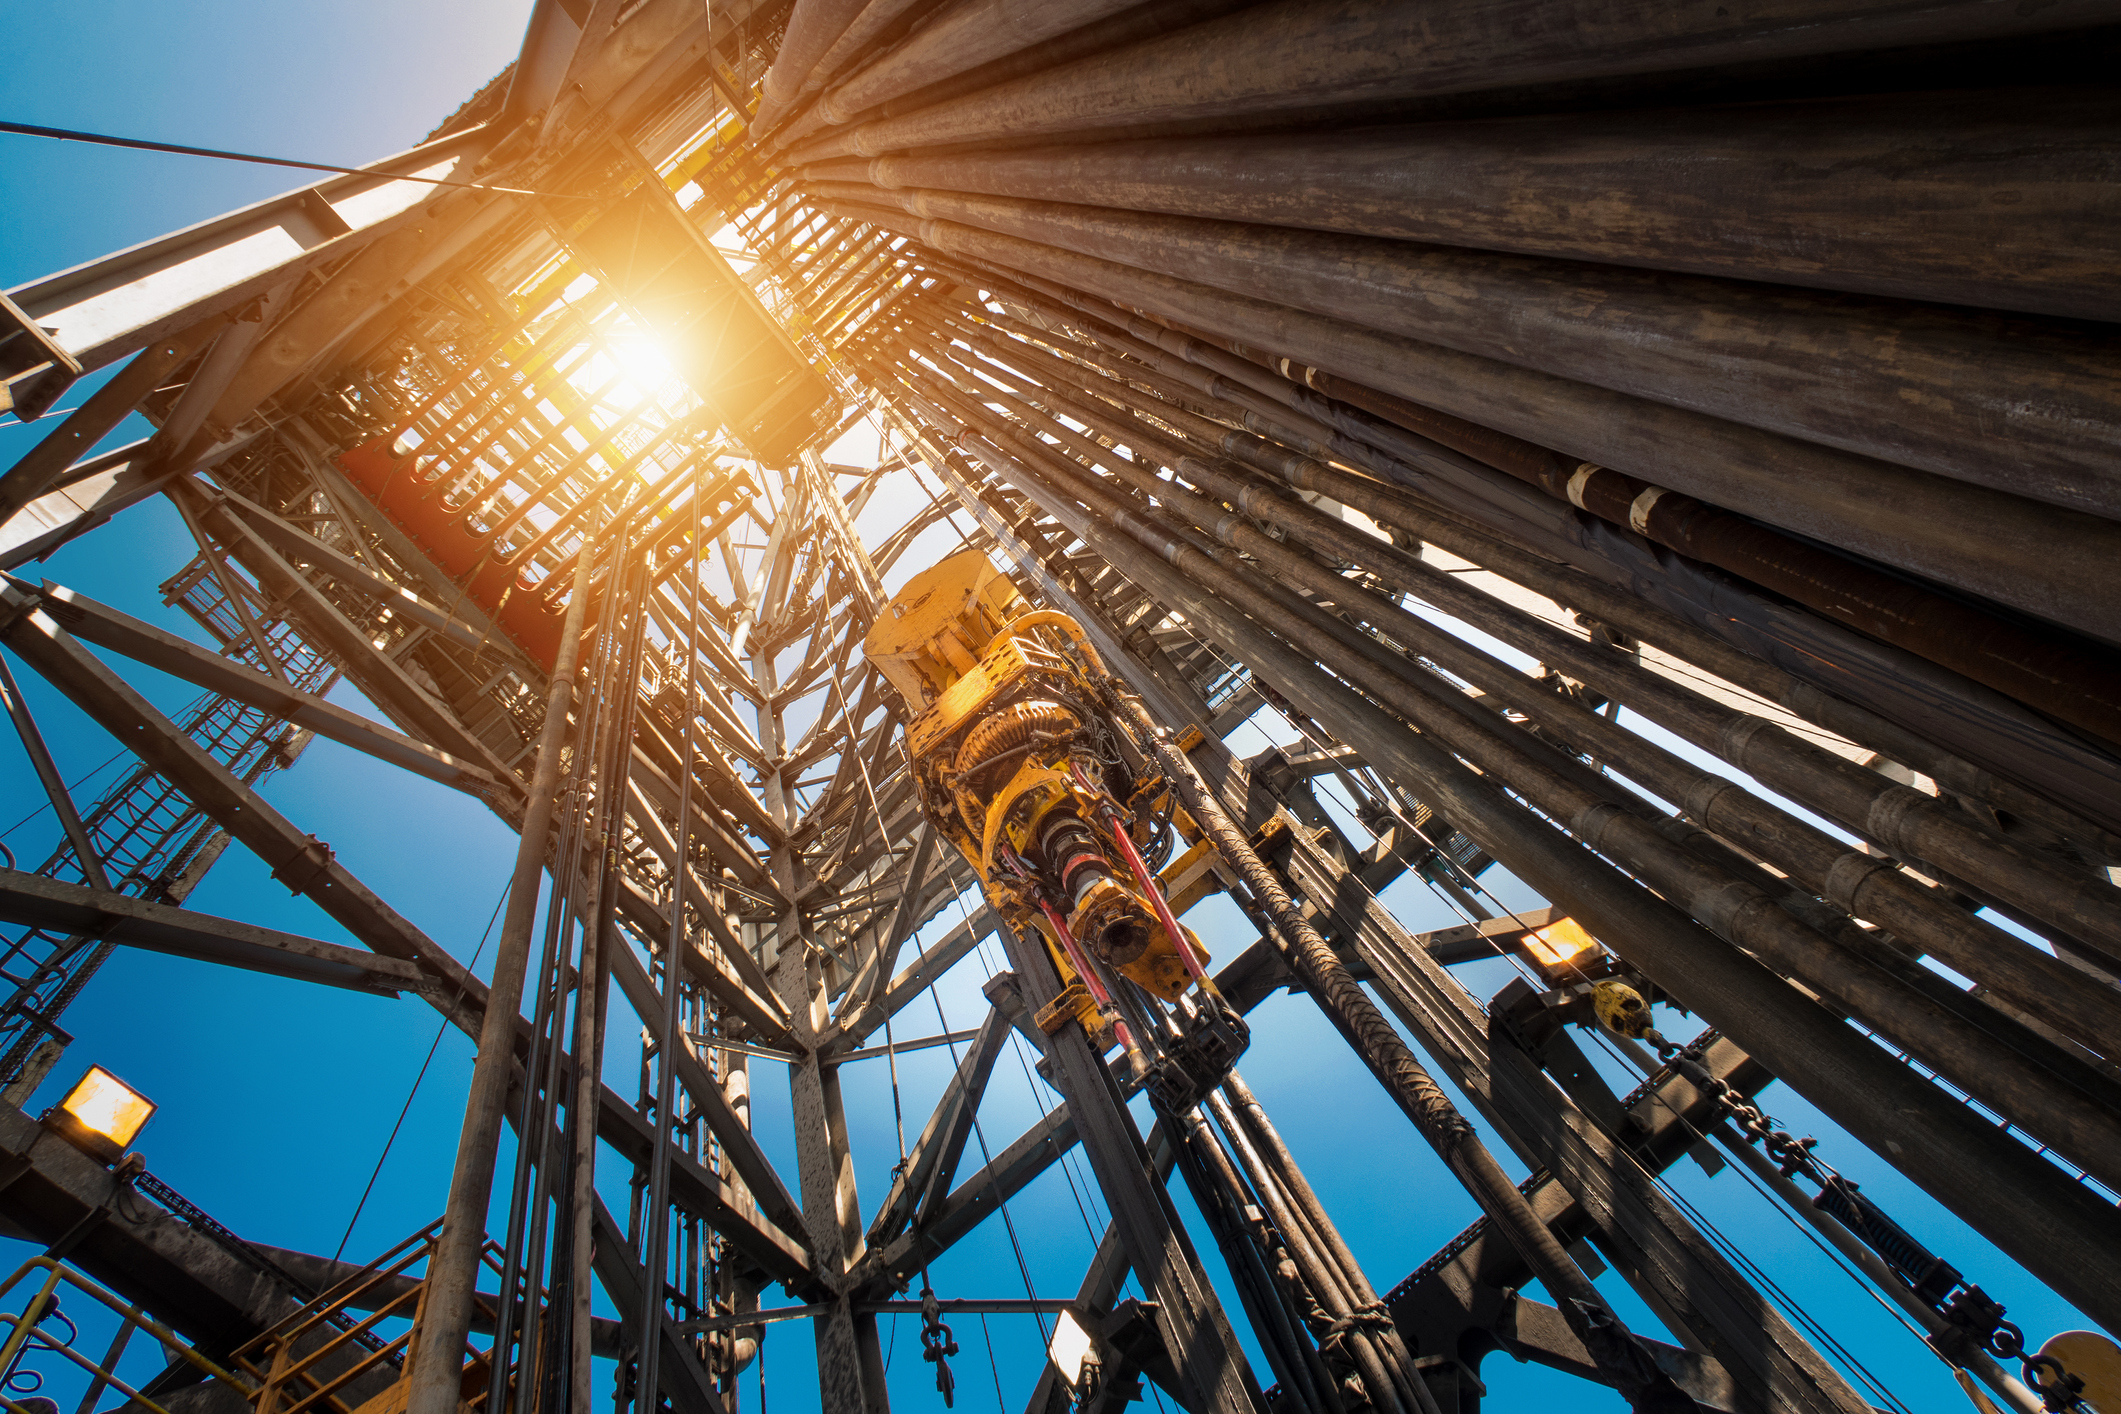 Open contracting for oil, gas and mining rights: 7 things we've